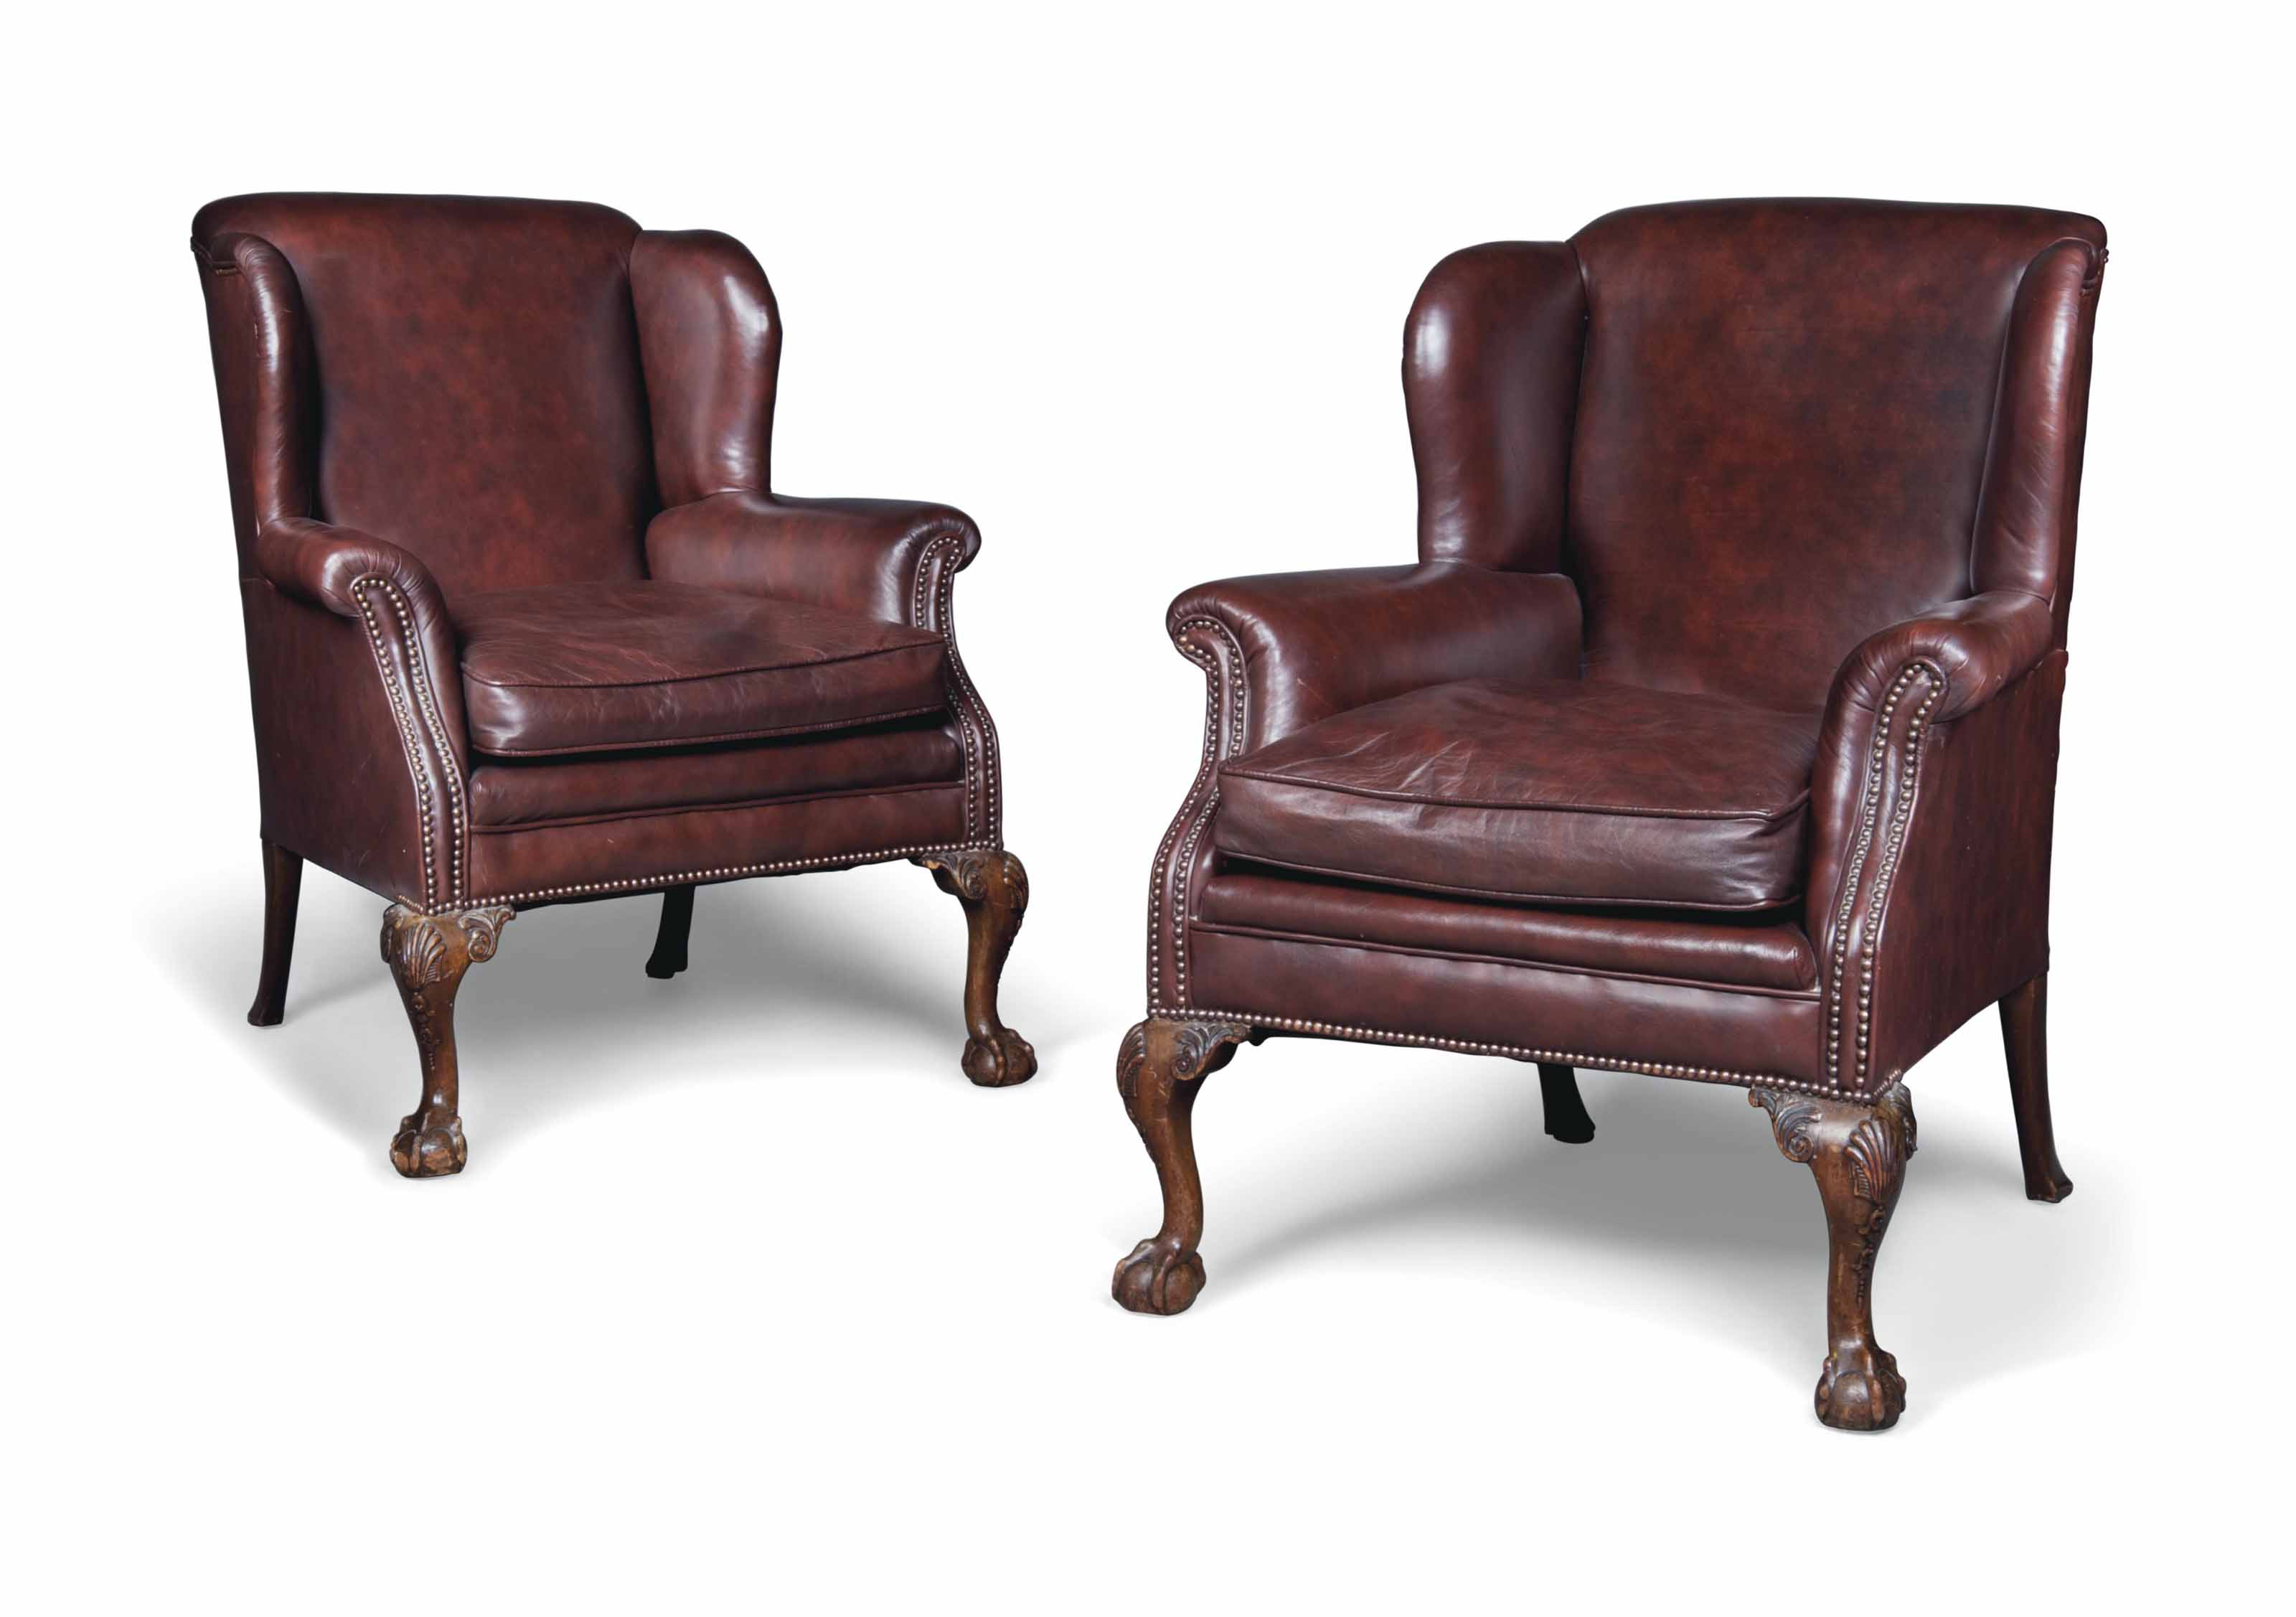 A PAIR OF QUEEN ANNE-STYLE MAH